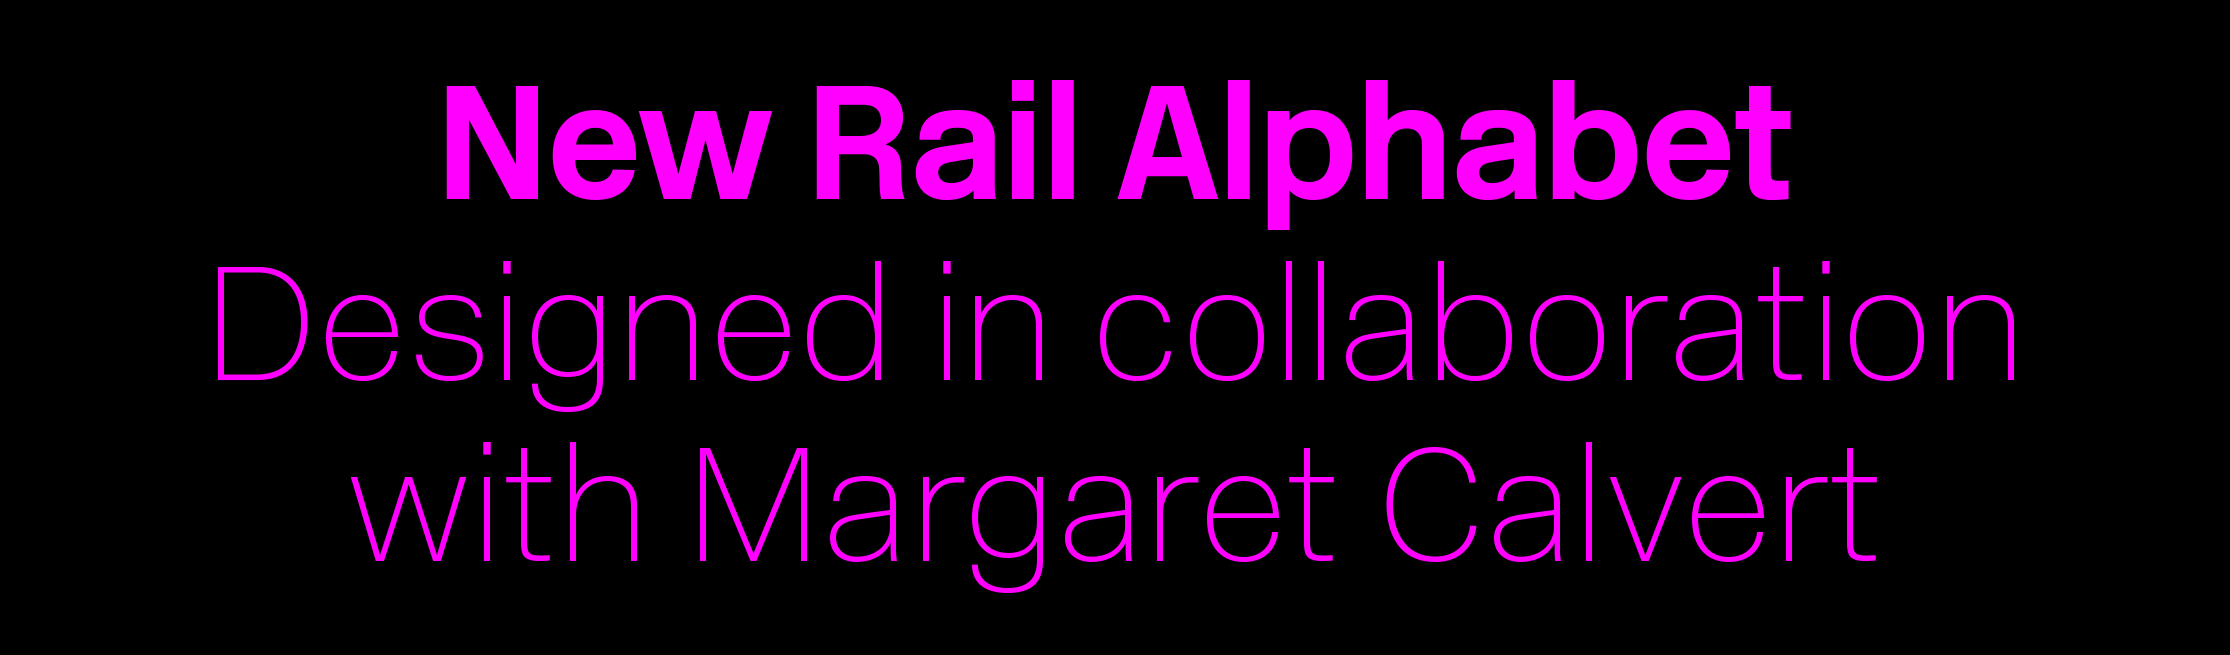 New Rail Alphabet sample